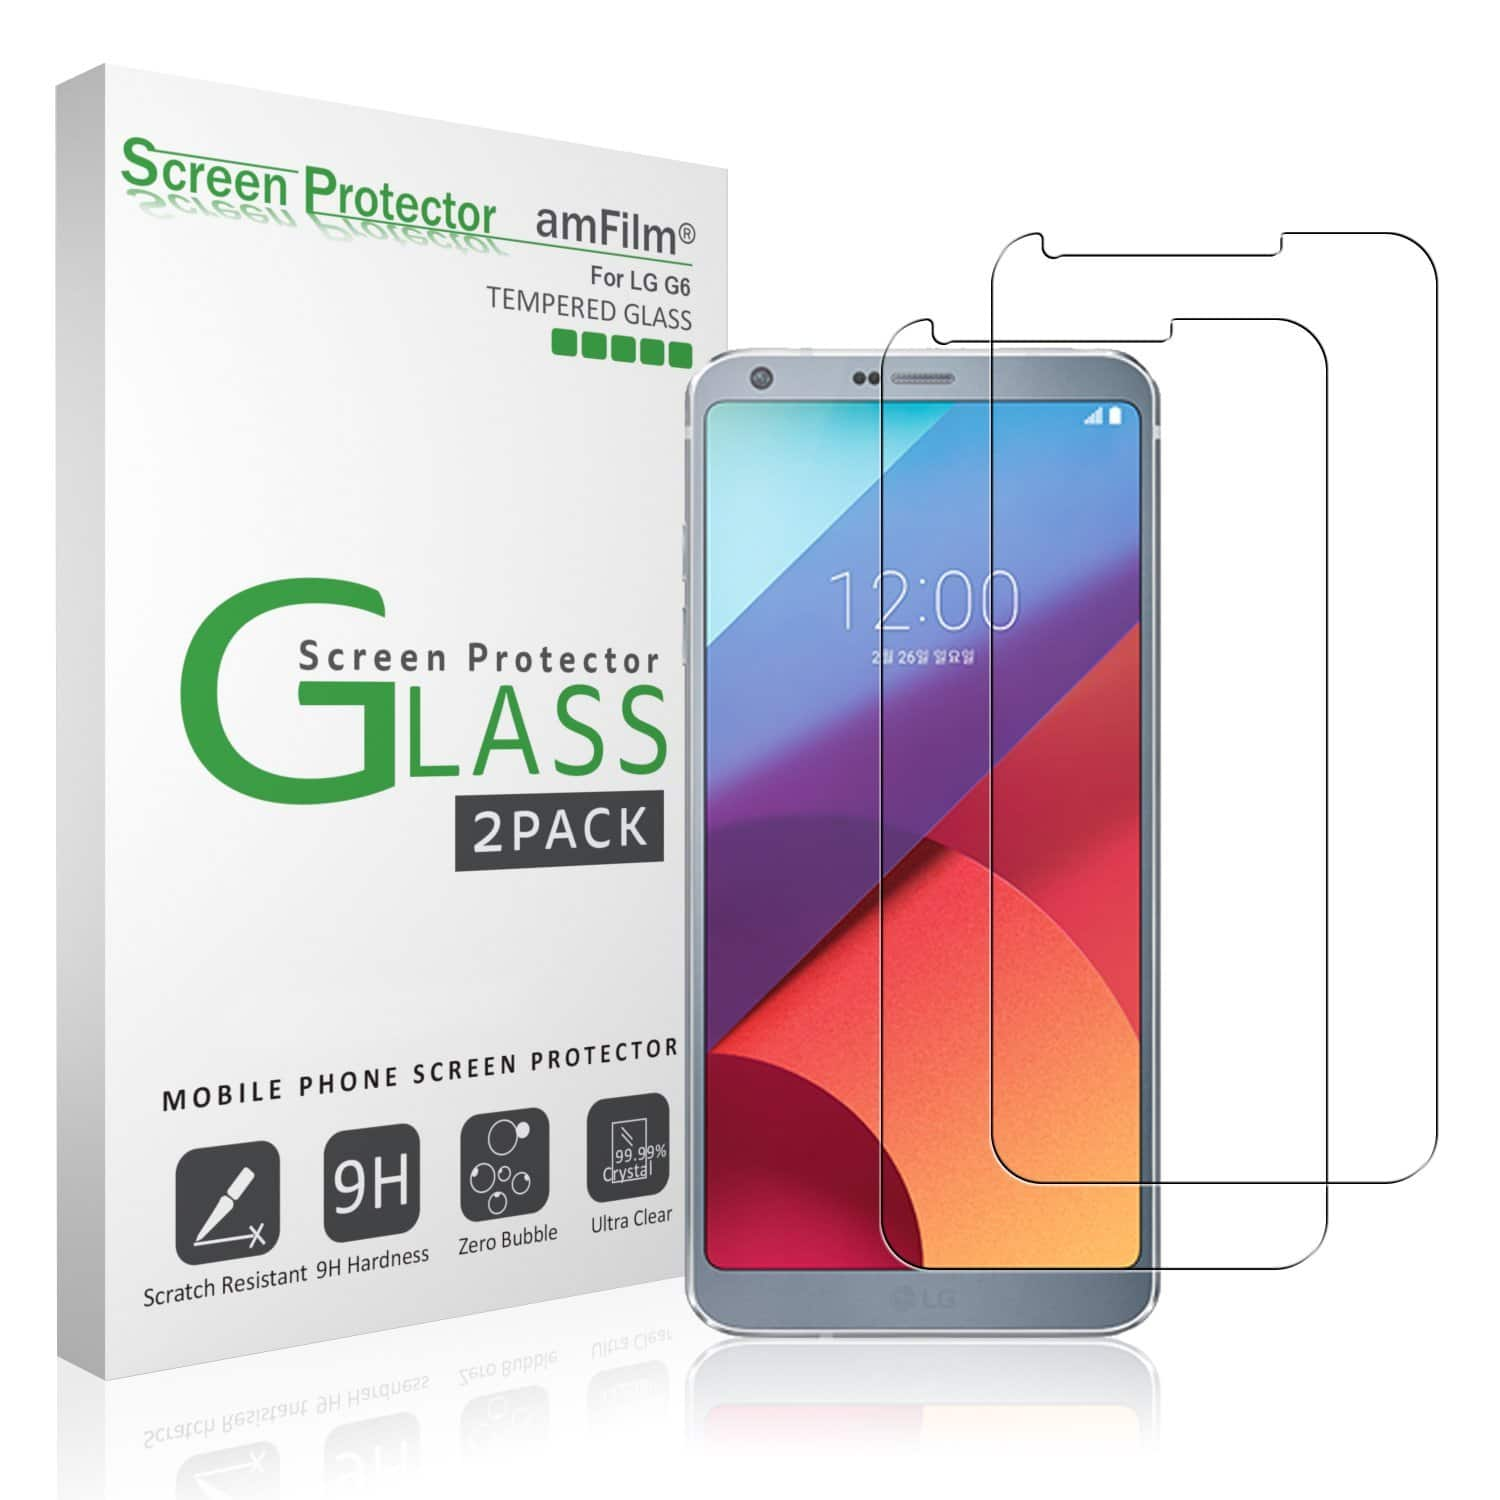 LG G6 Glass Screen Protector 2-Pack - $0.96 + Free Shipping at Amazon